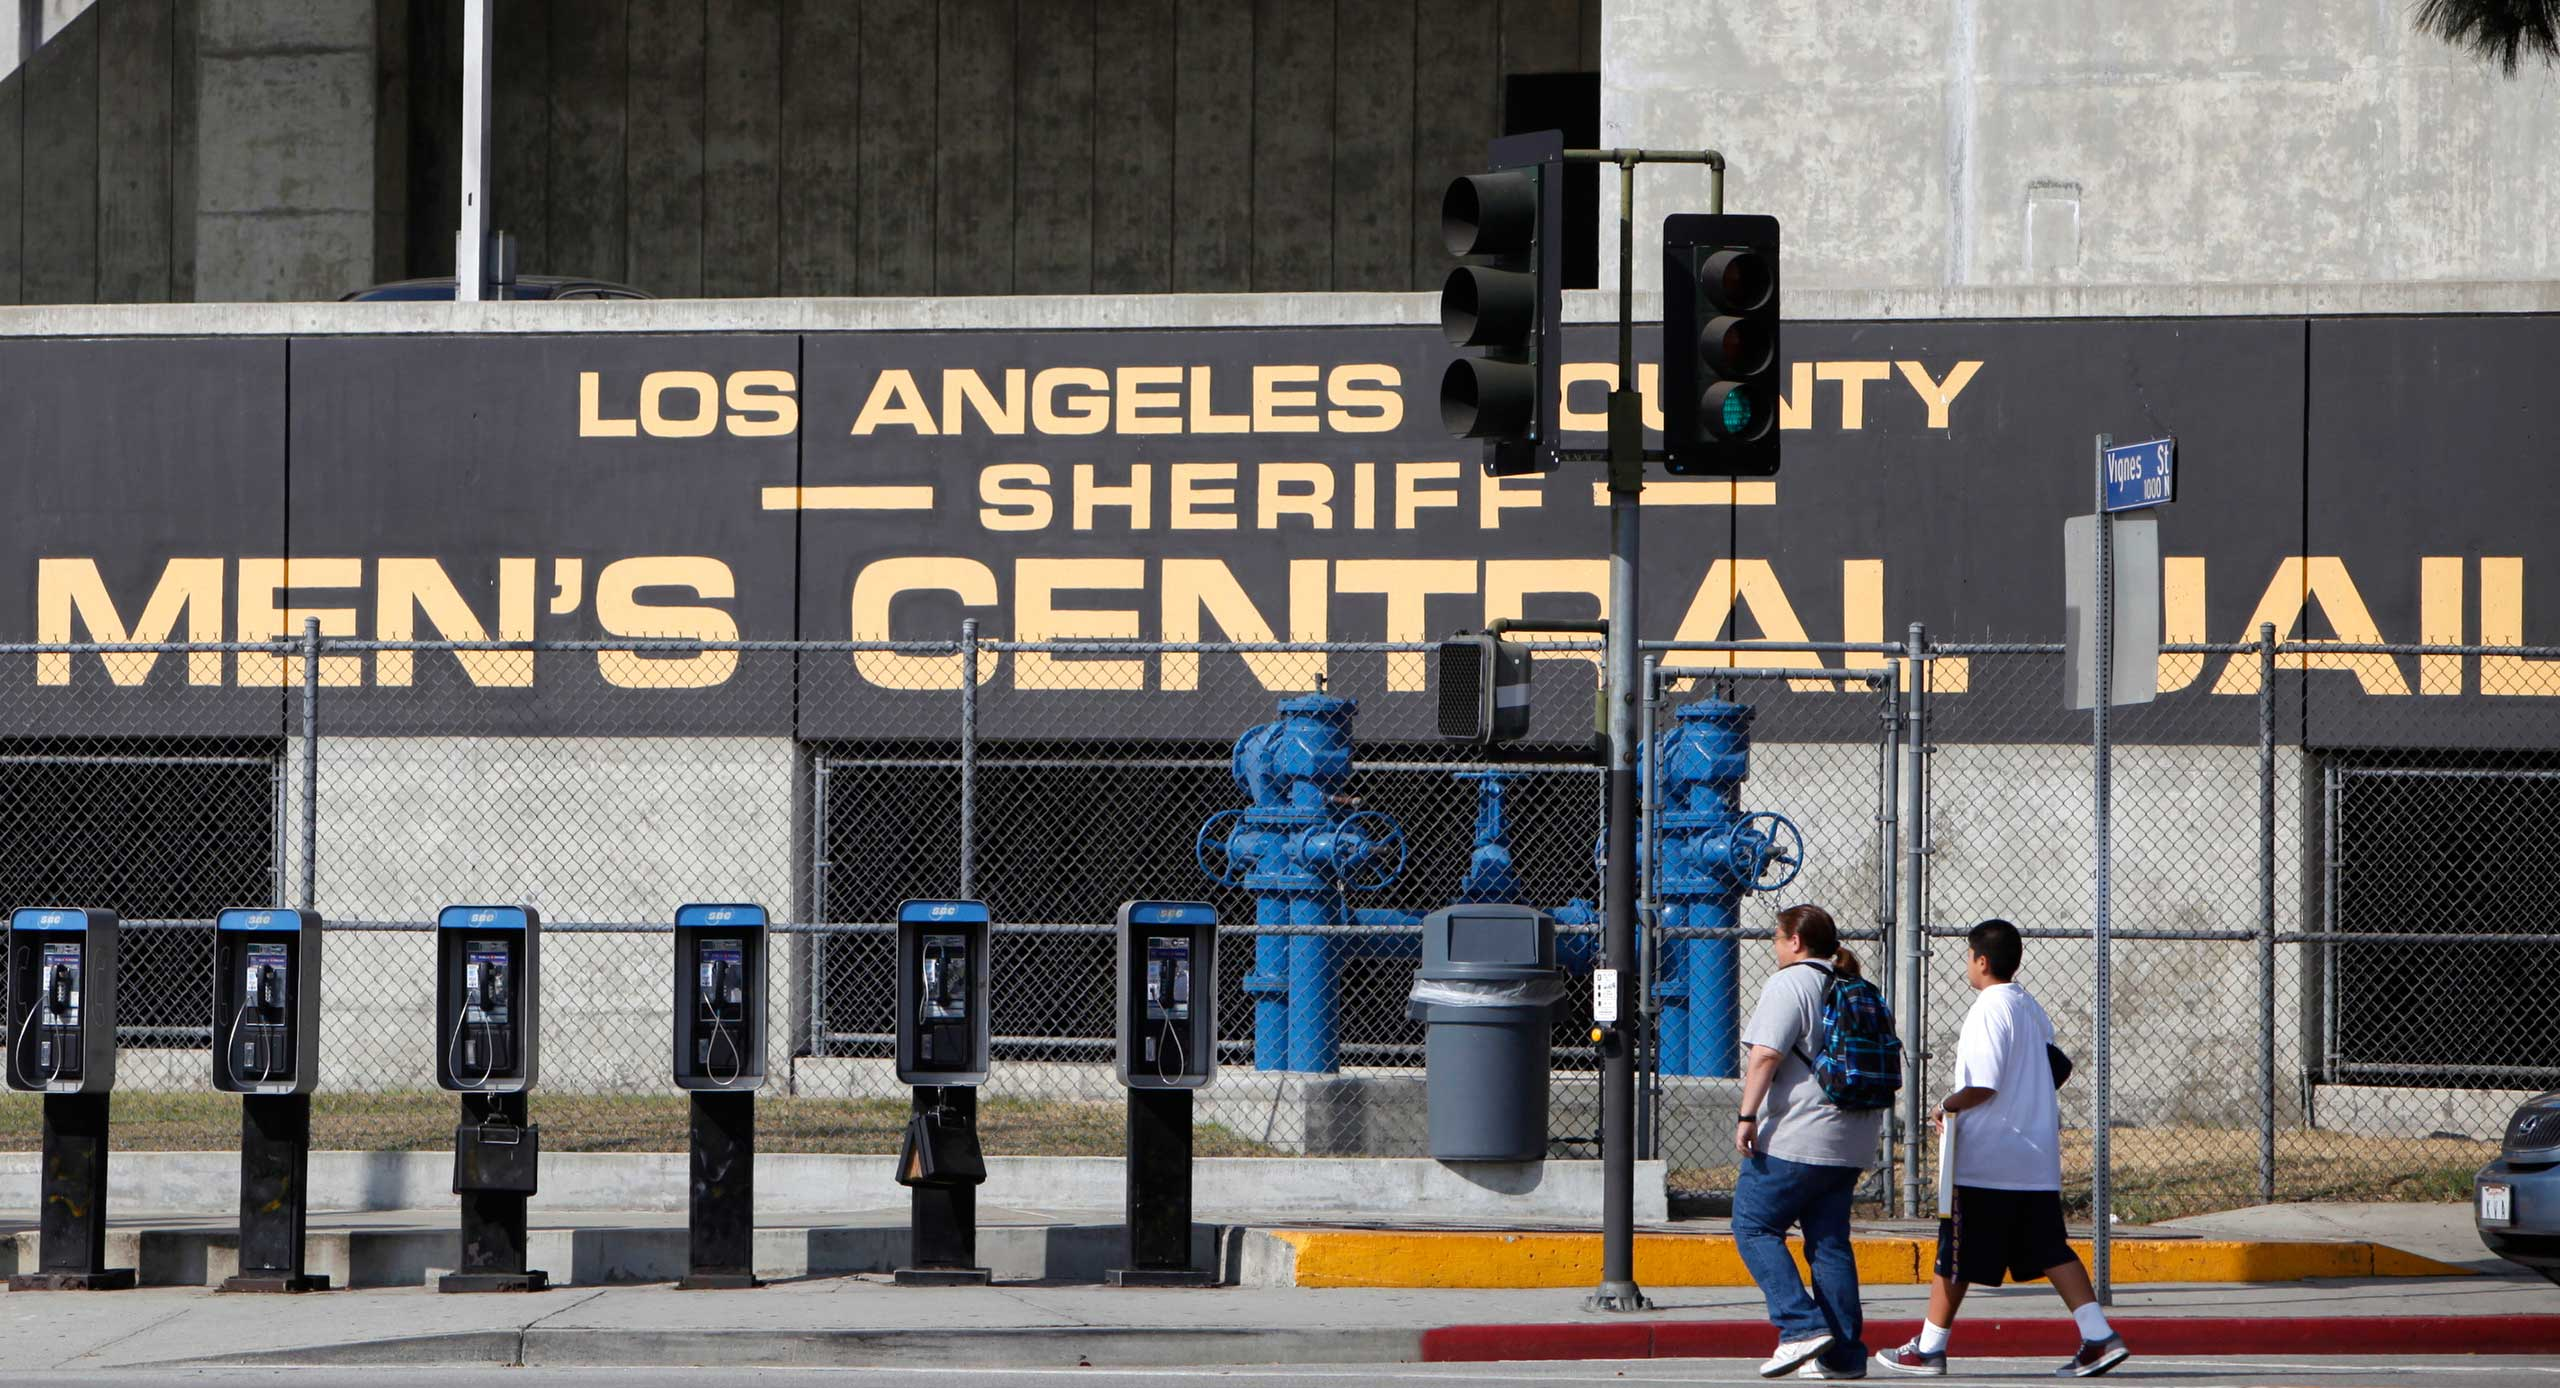 People walk past the Los Angeles County Sheriff's Men's Central Jail facility in Los Angeles.